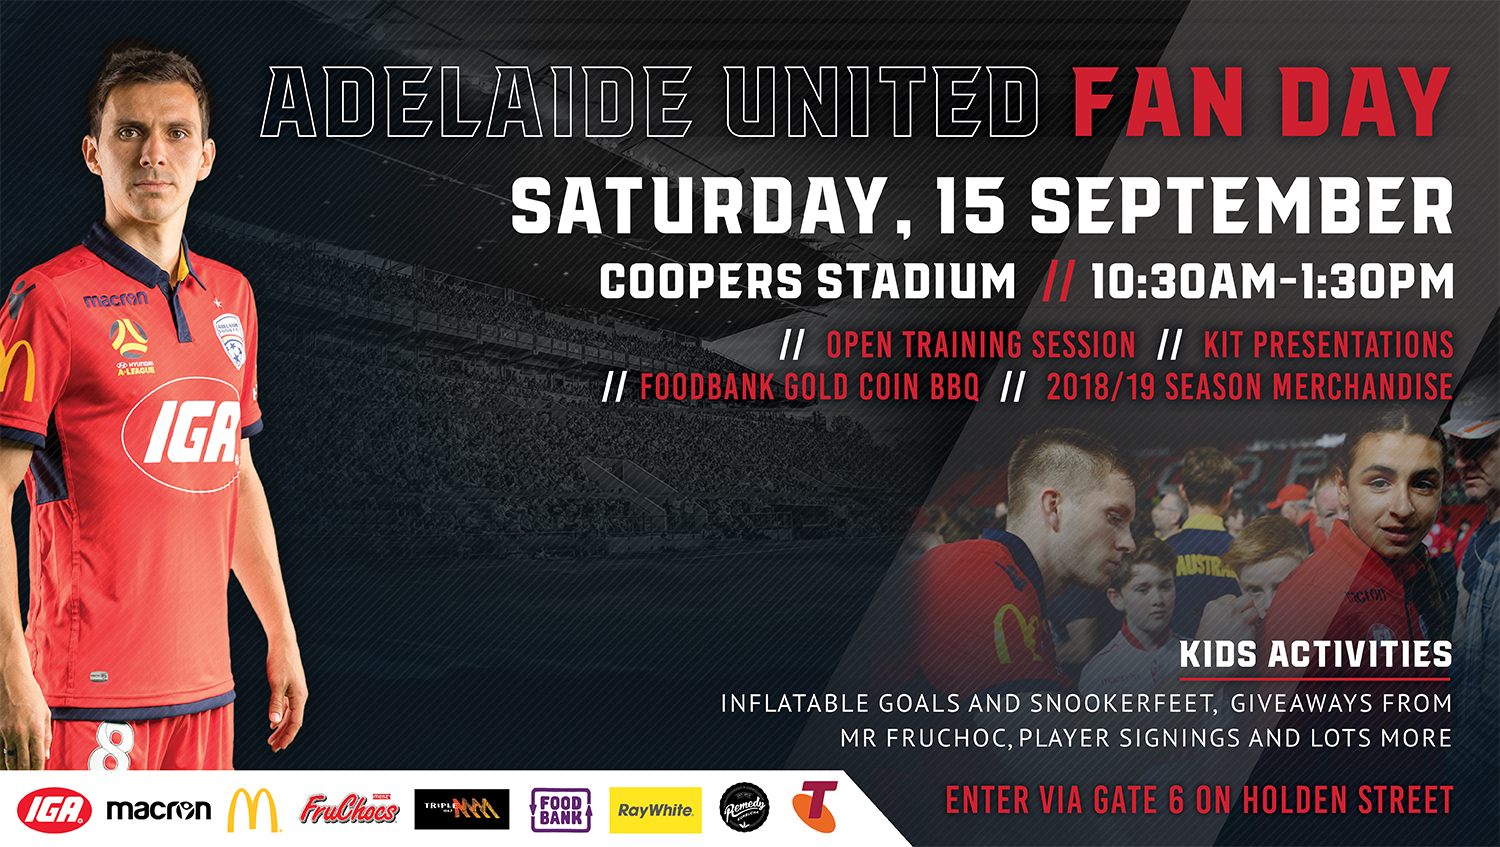 Adelaide United Fan Day 2018